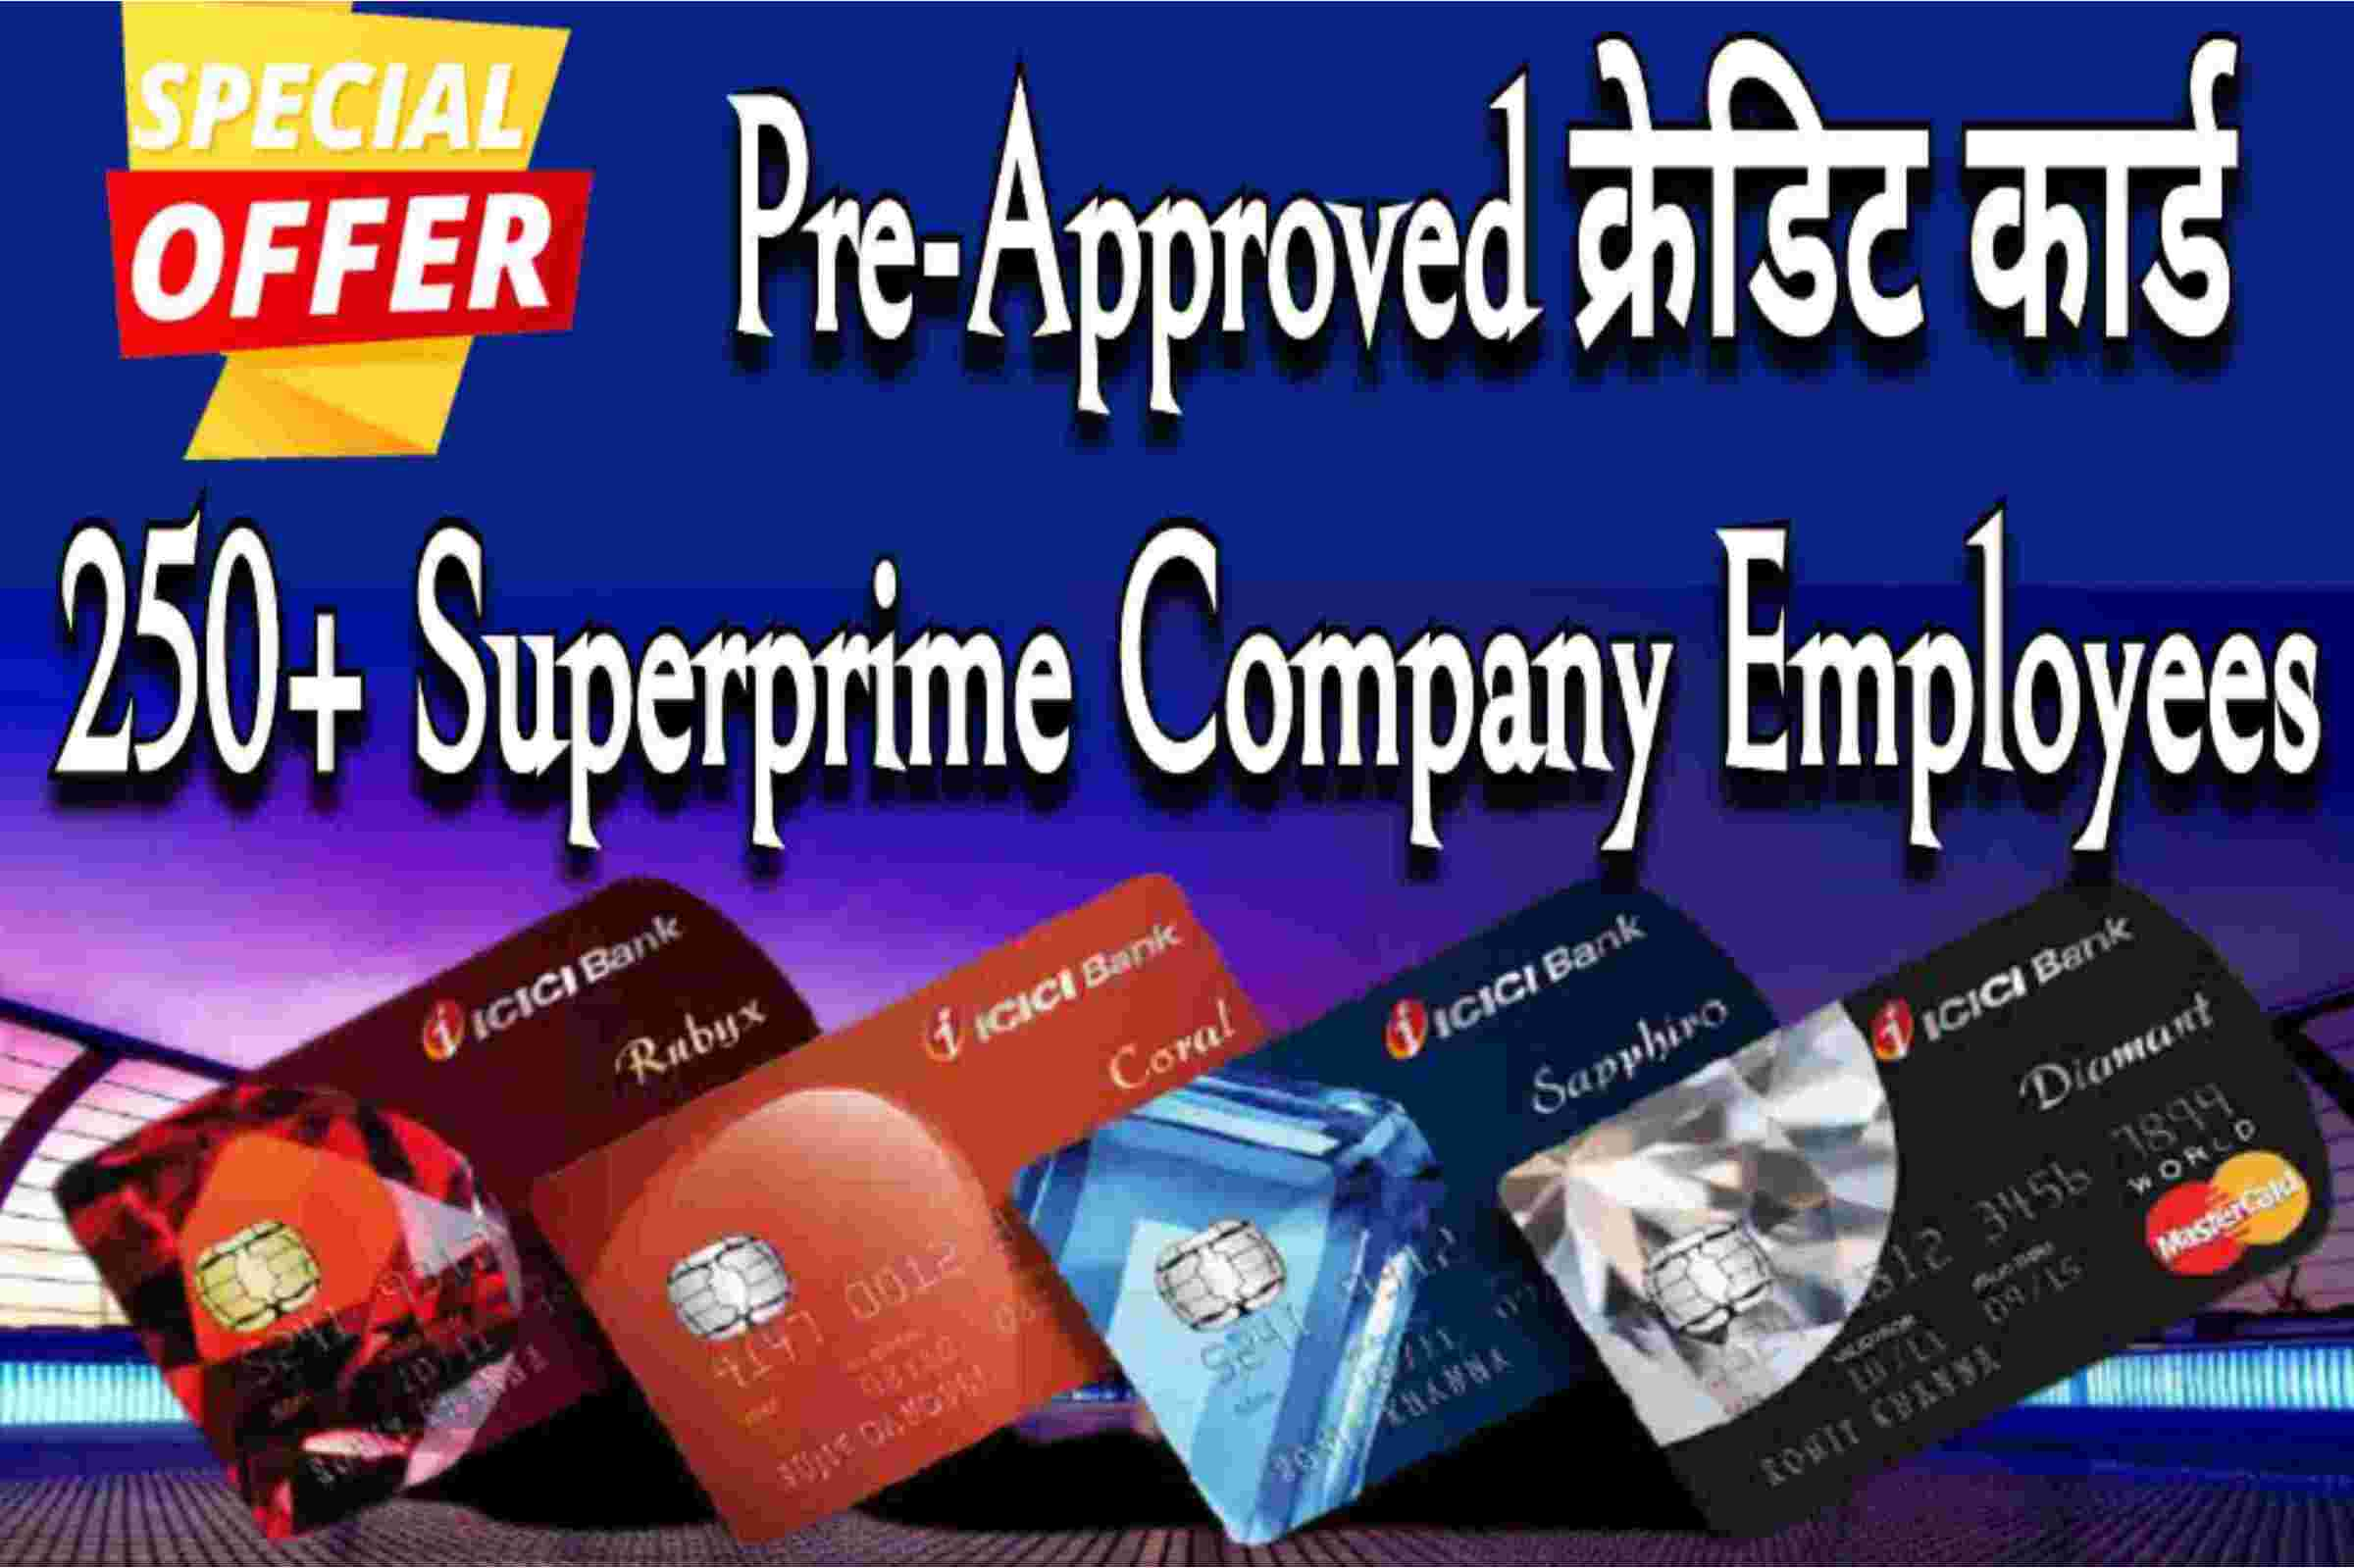 You are currently viewing Pre Approved Credit Card For 250+Super Prime Companies Employees.